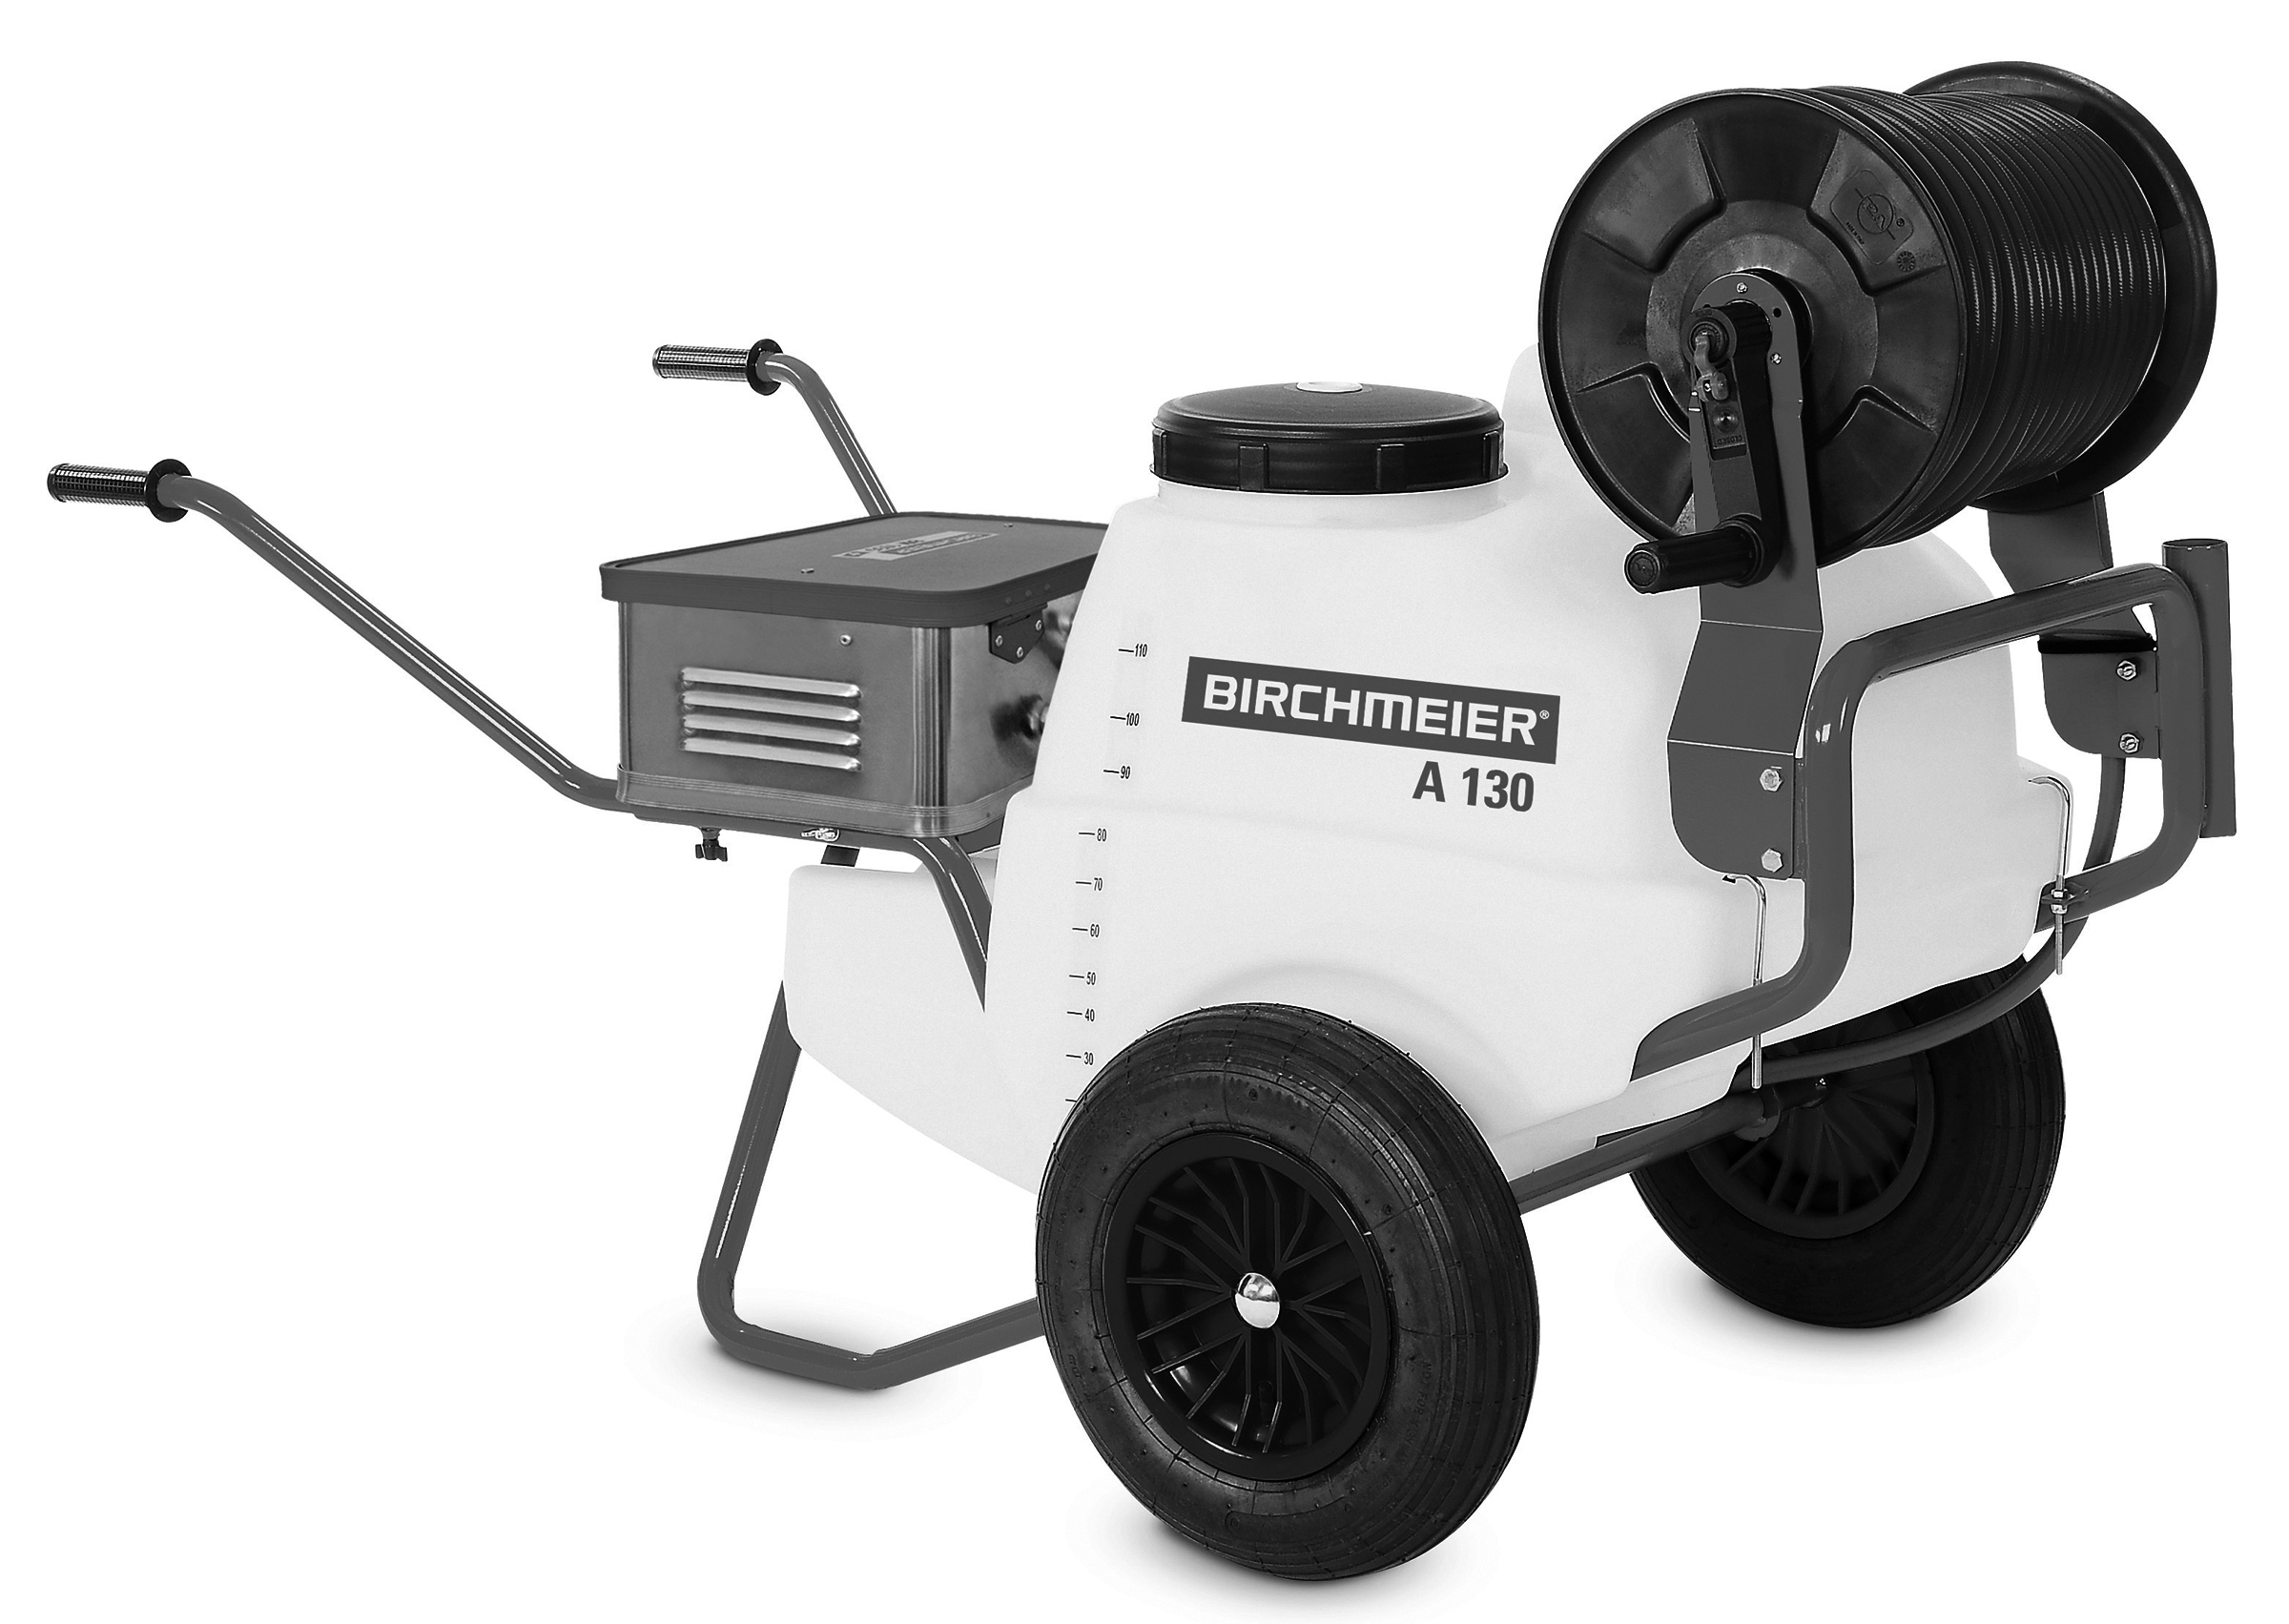 A 130 AZ1 battery wheelbarrow sprayer